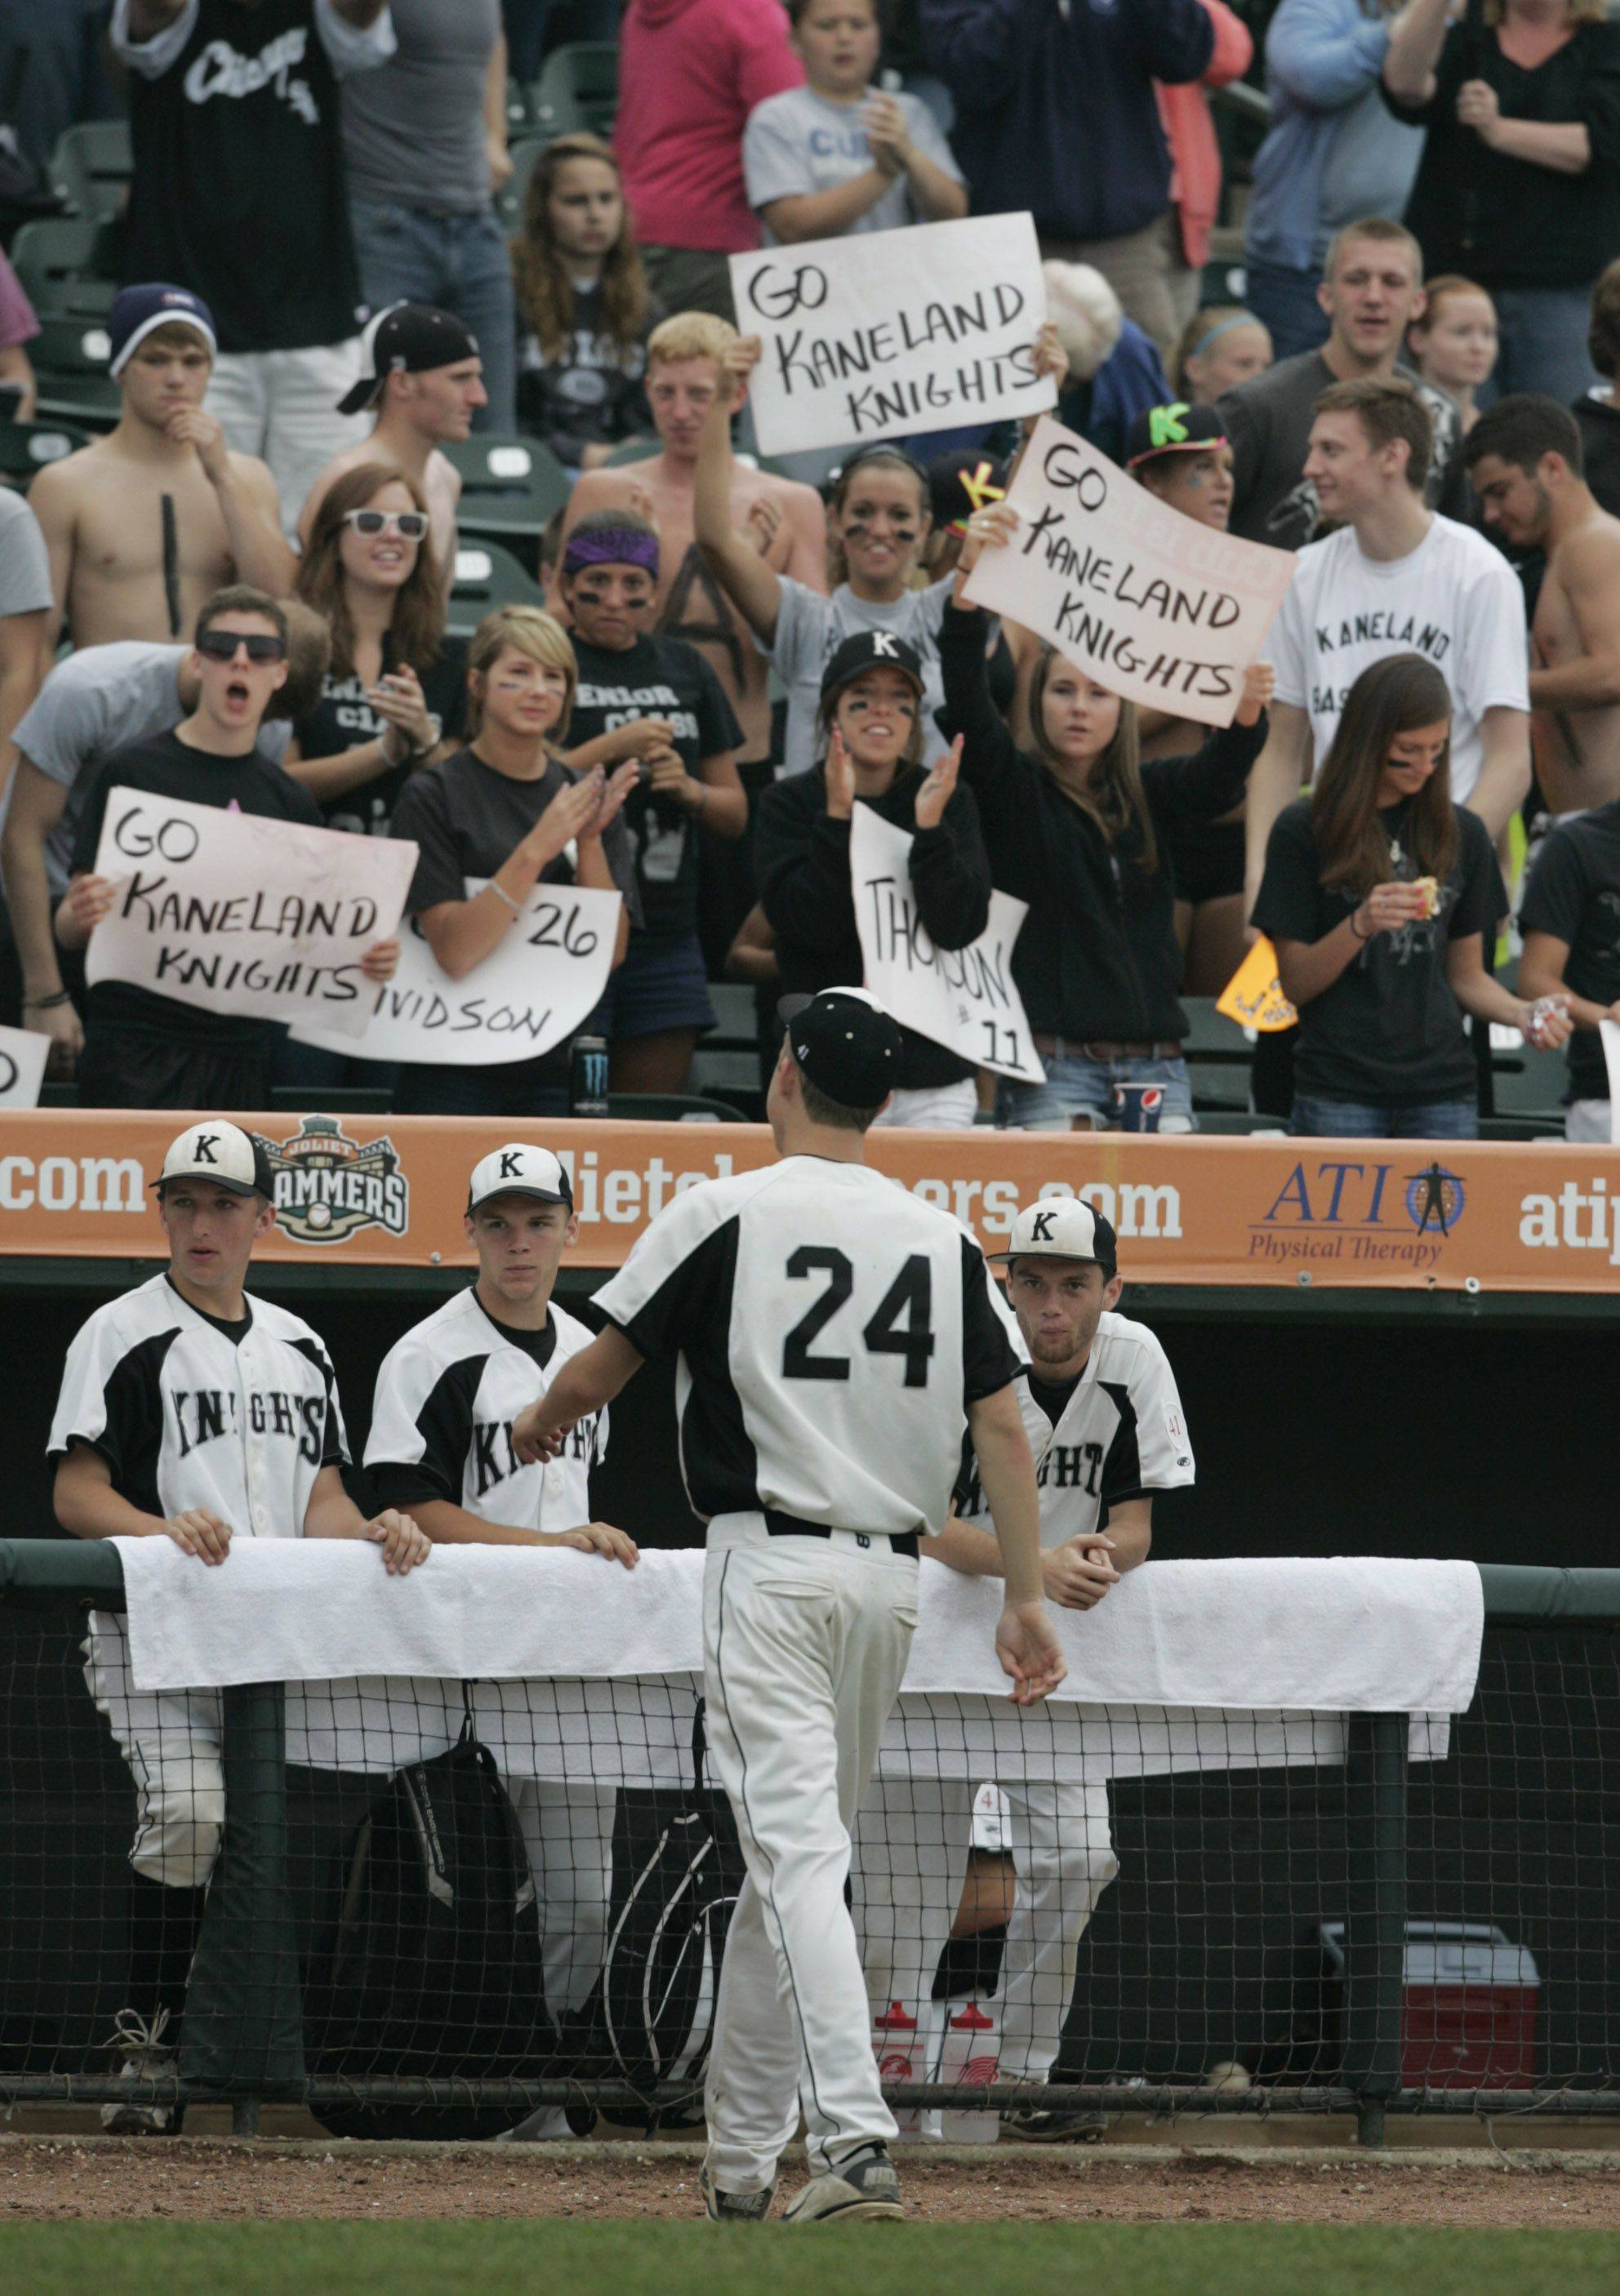 Kaneland fans cheer on the team as Trevor Heinle walks to the dugout during the Kaneland vs. Oak Forest boys high school baseball game Saturday in the Class 3A state finals at Silver Cross Field in Joliet. Kaneland defeated Oak Forest 11-3 to win the state championship.